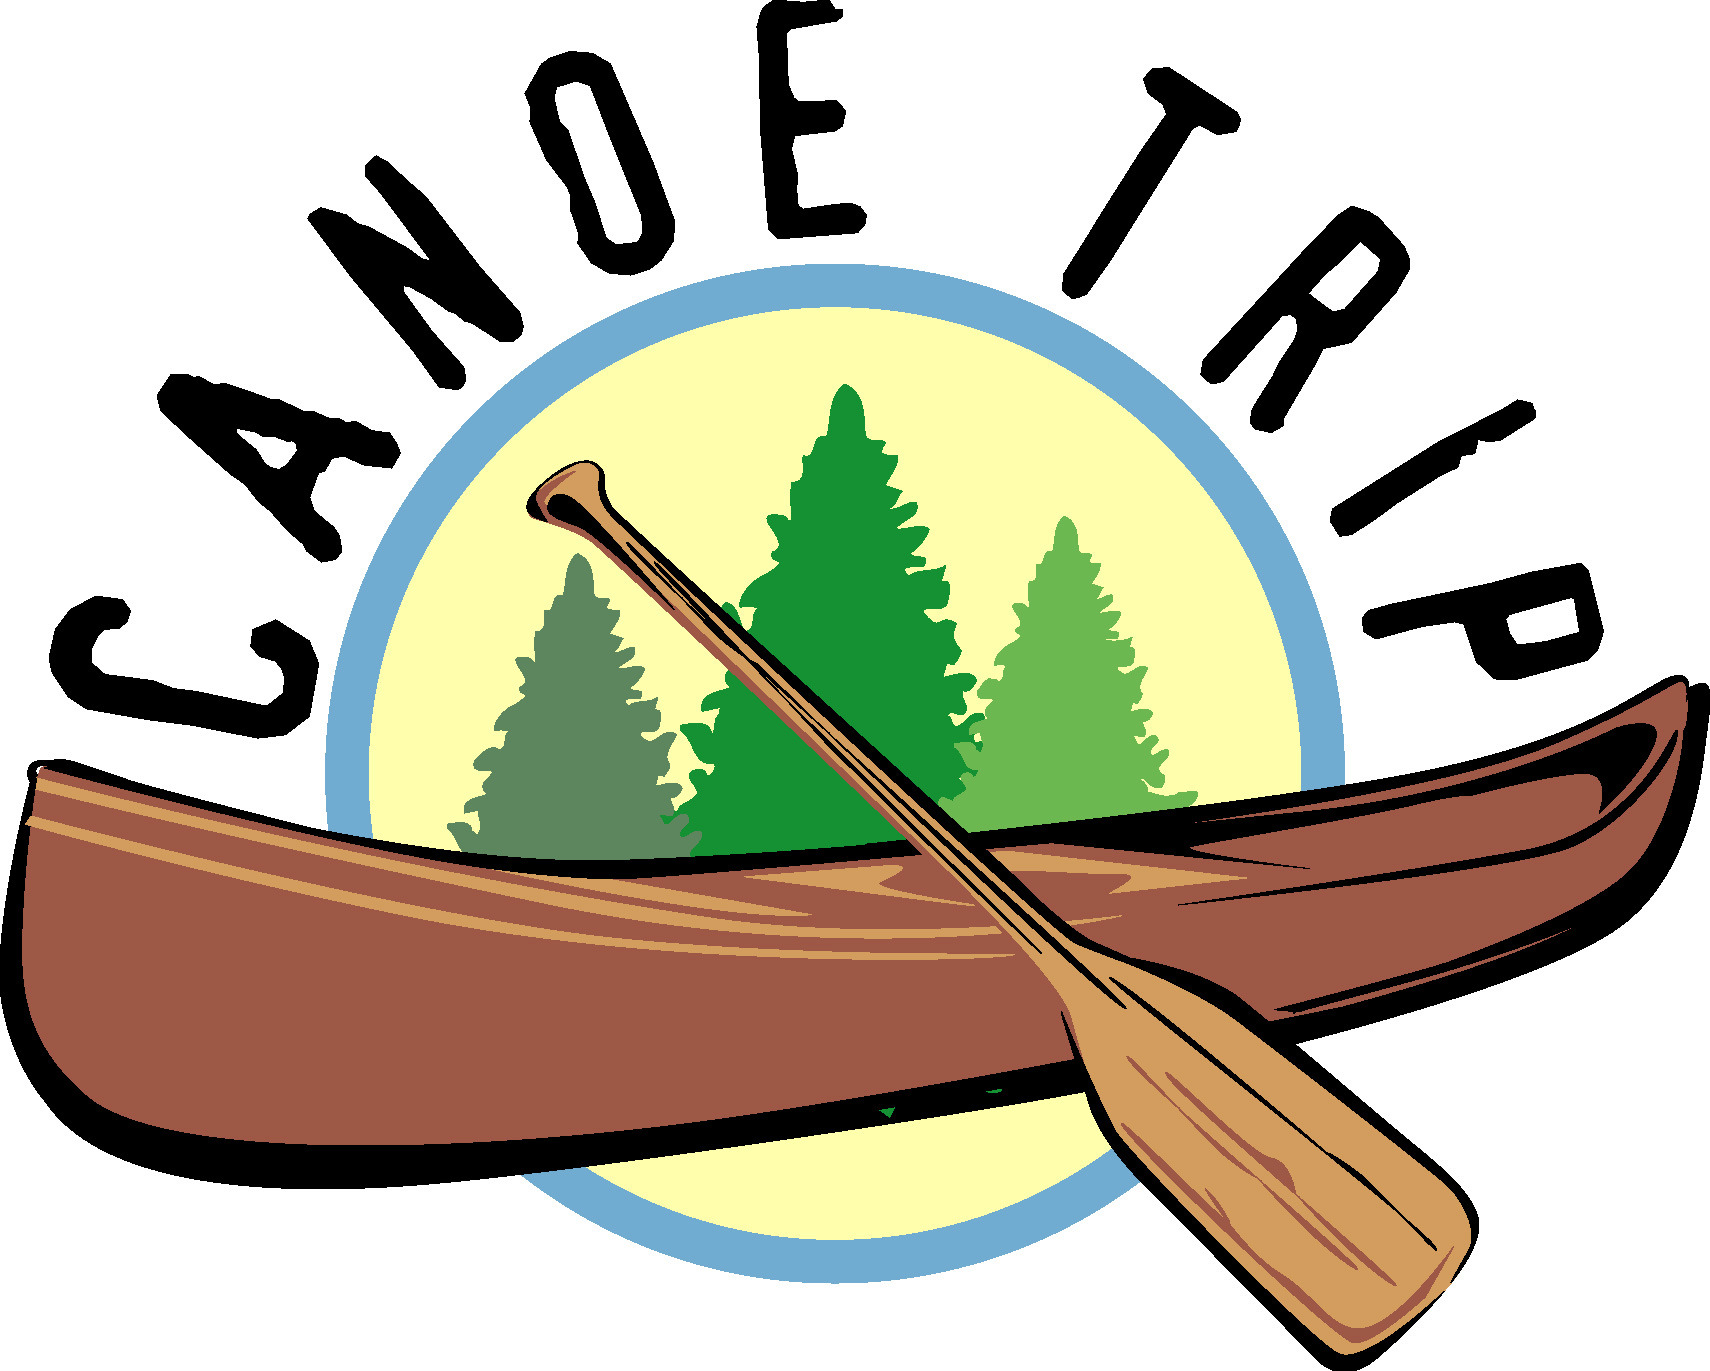 Canoe trip clipart 20 free Cliparts | Download images on ...